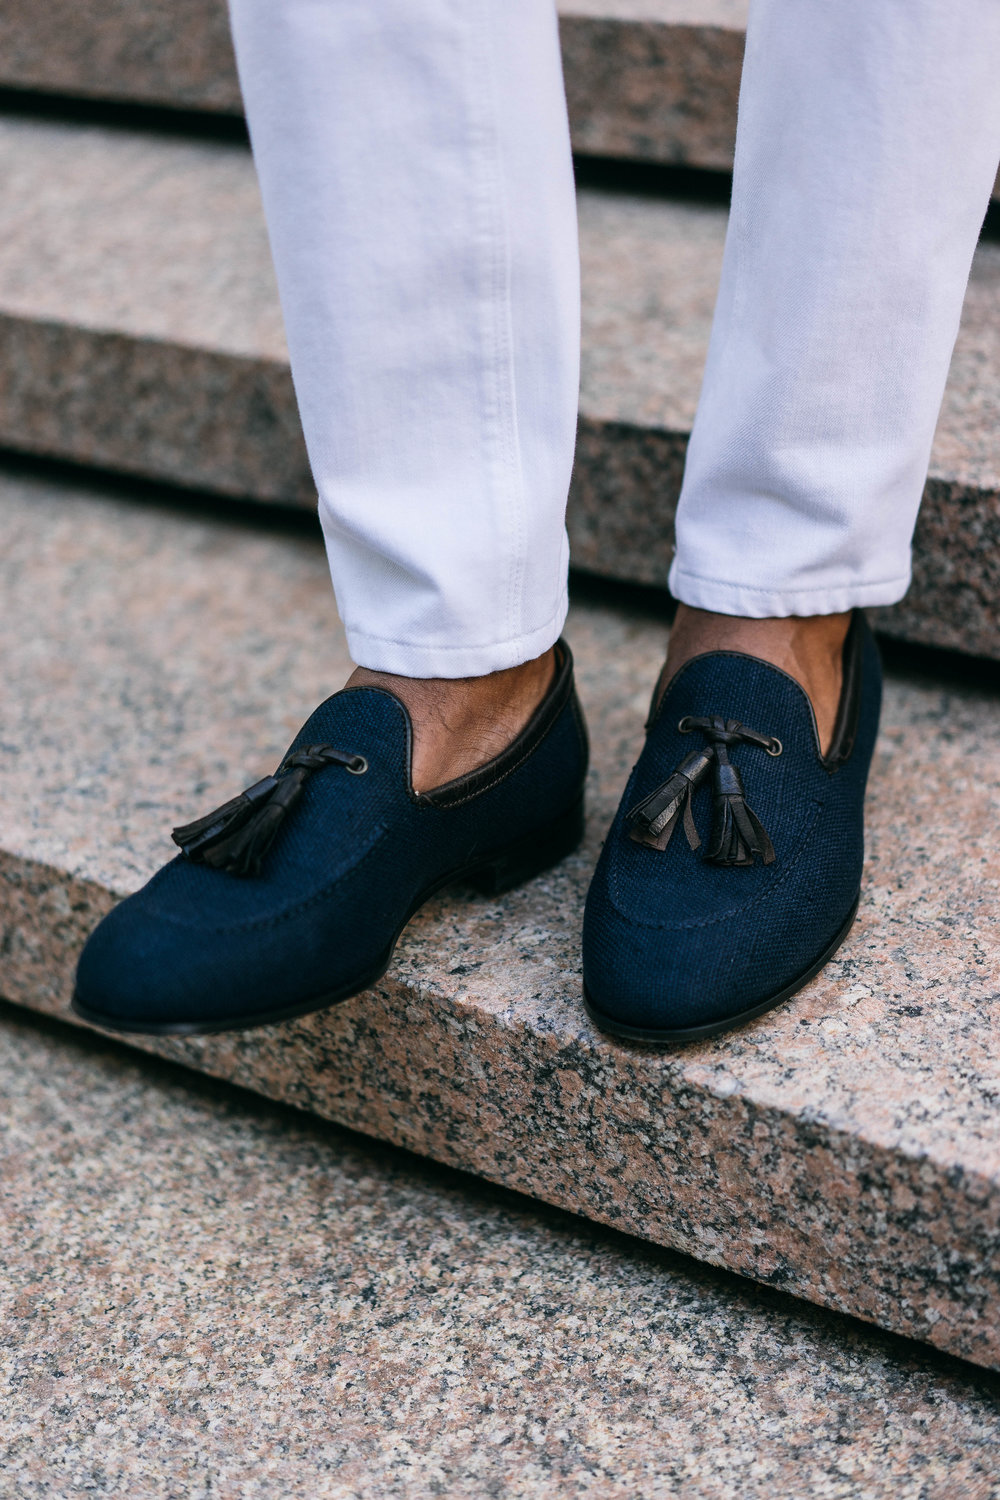 "I also wanted to mention these new beauties. I was in need of some new navy tassel loafers and thought, ""surely I'll replace my suede pair with another suede pair""... Then along came these canvas stunners from the SUITSUPPLY sale. The sale is over, but I highlight these to encourage you to  think outside the box  if/when looking for a twist on a staple."